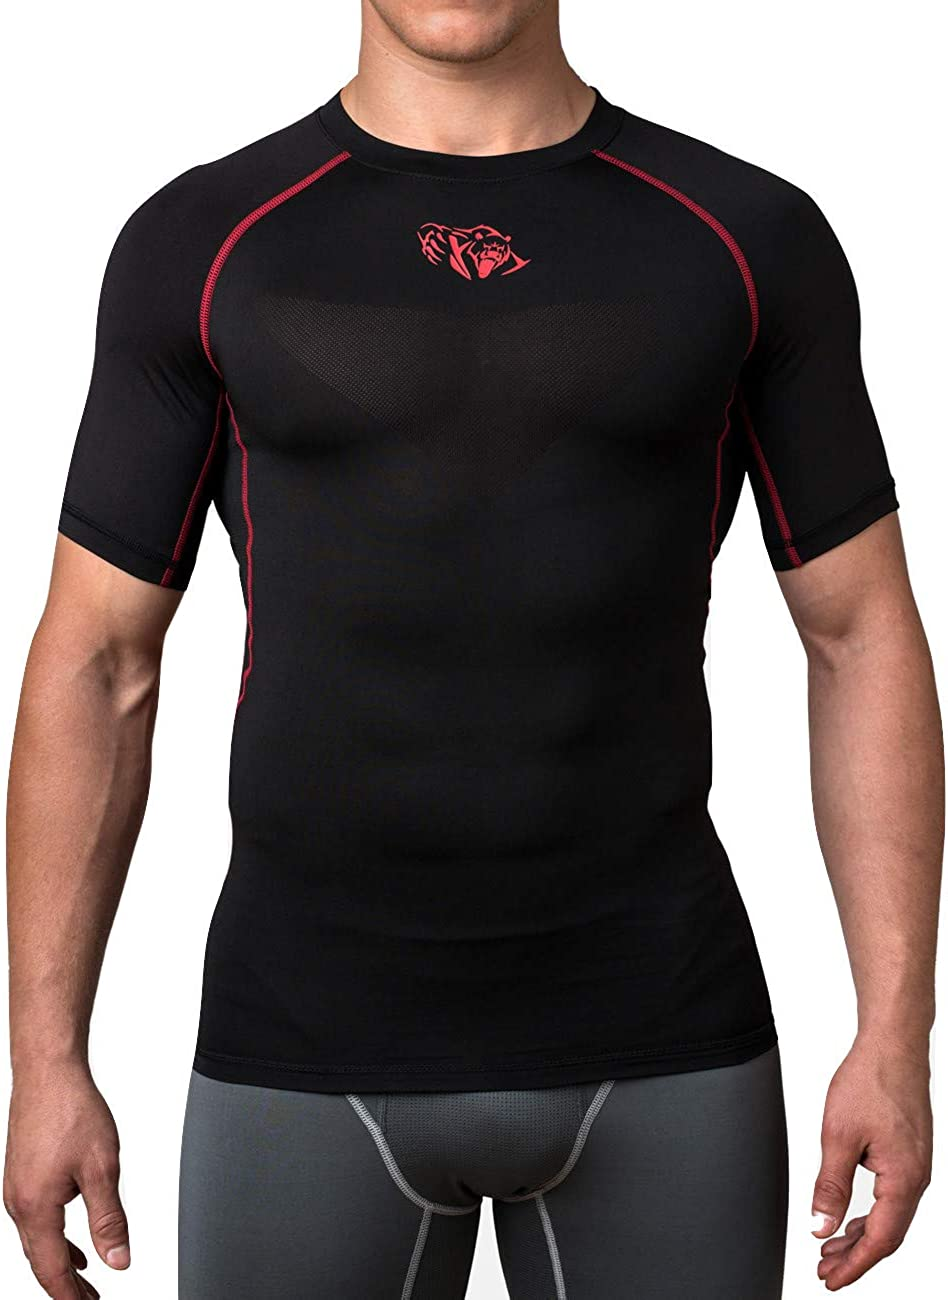 Mens Sports T-shirt Compression Workout Tops Tight Cycling Short Sleeve Gym Tees